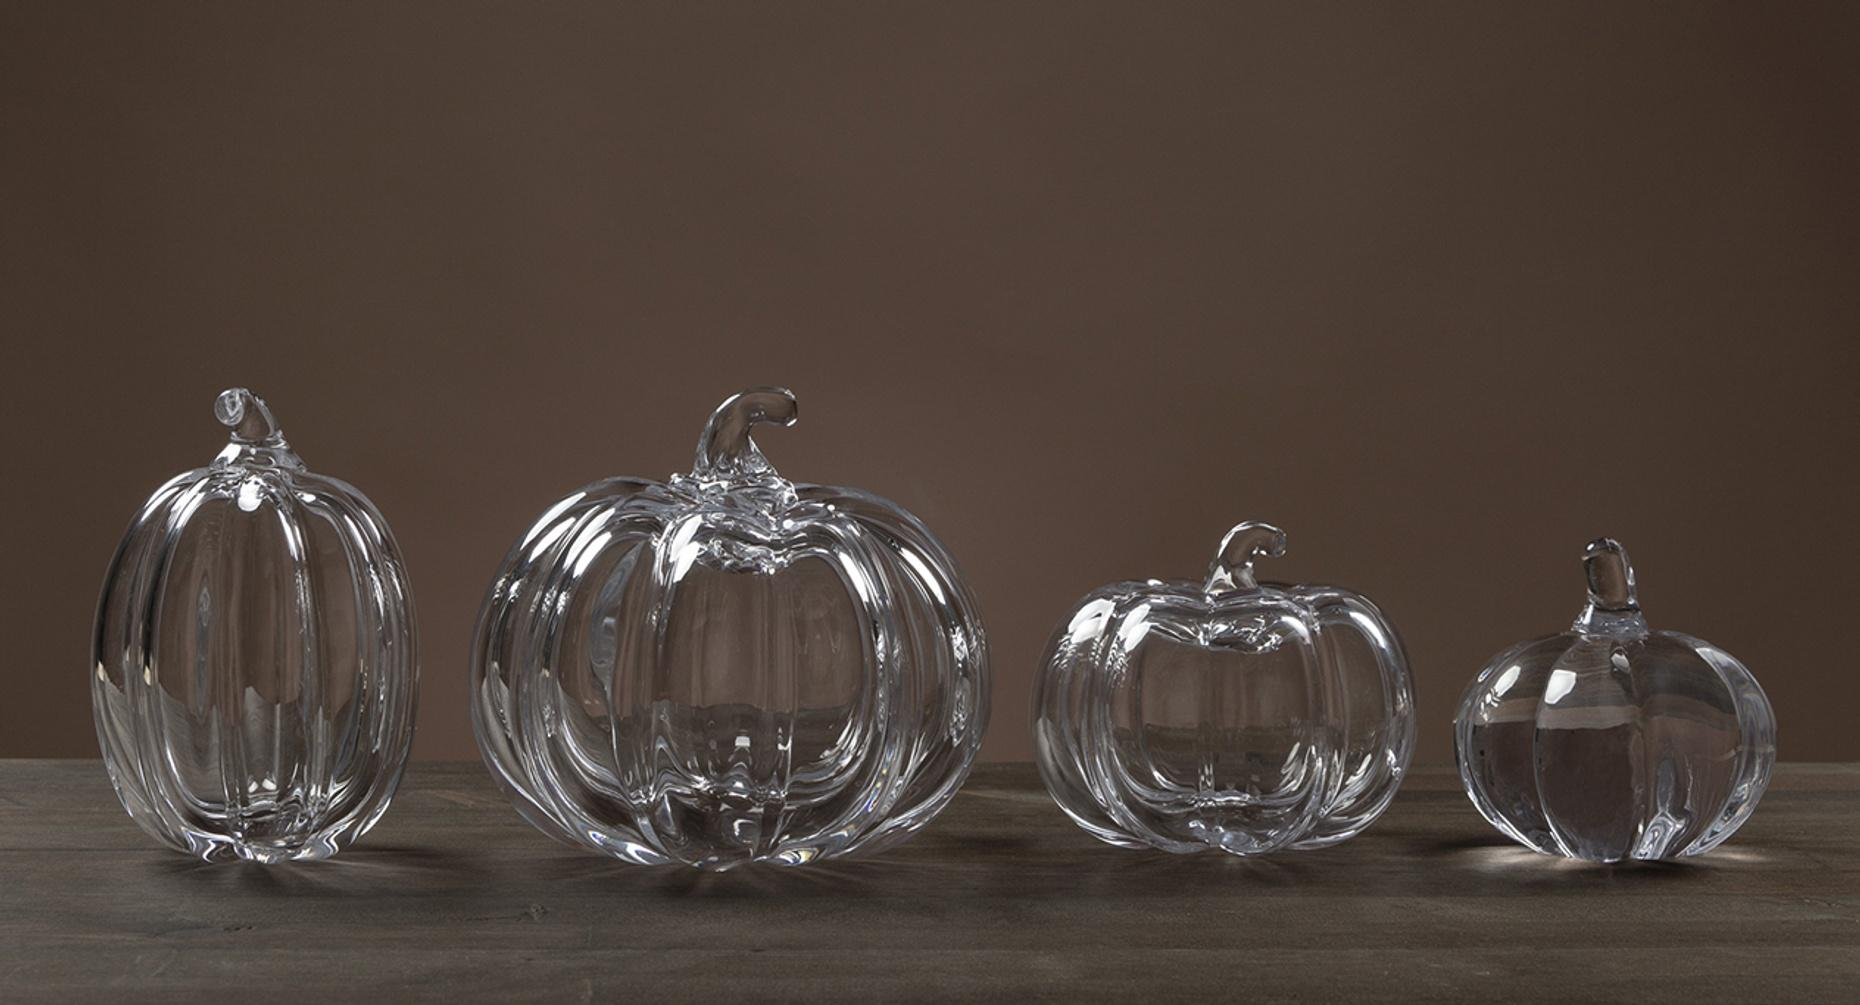 Two-Hour Glass Pumpkin Making Class in Columbia